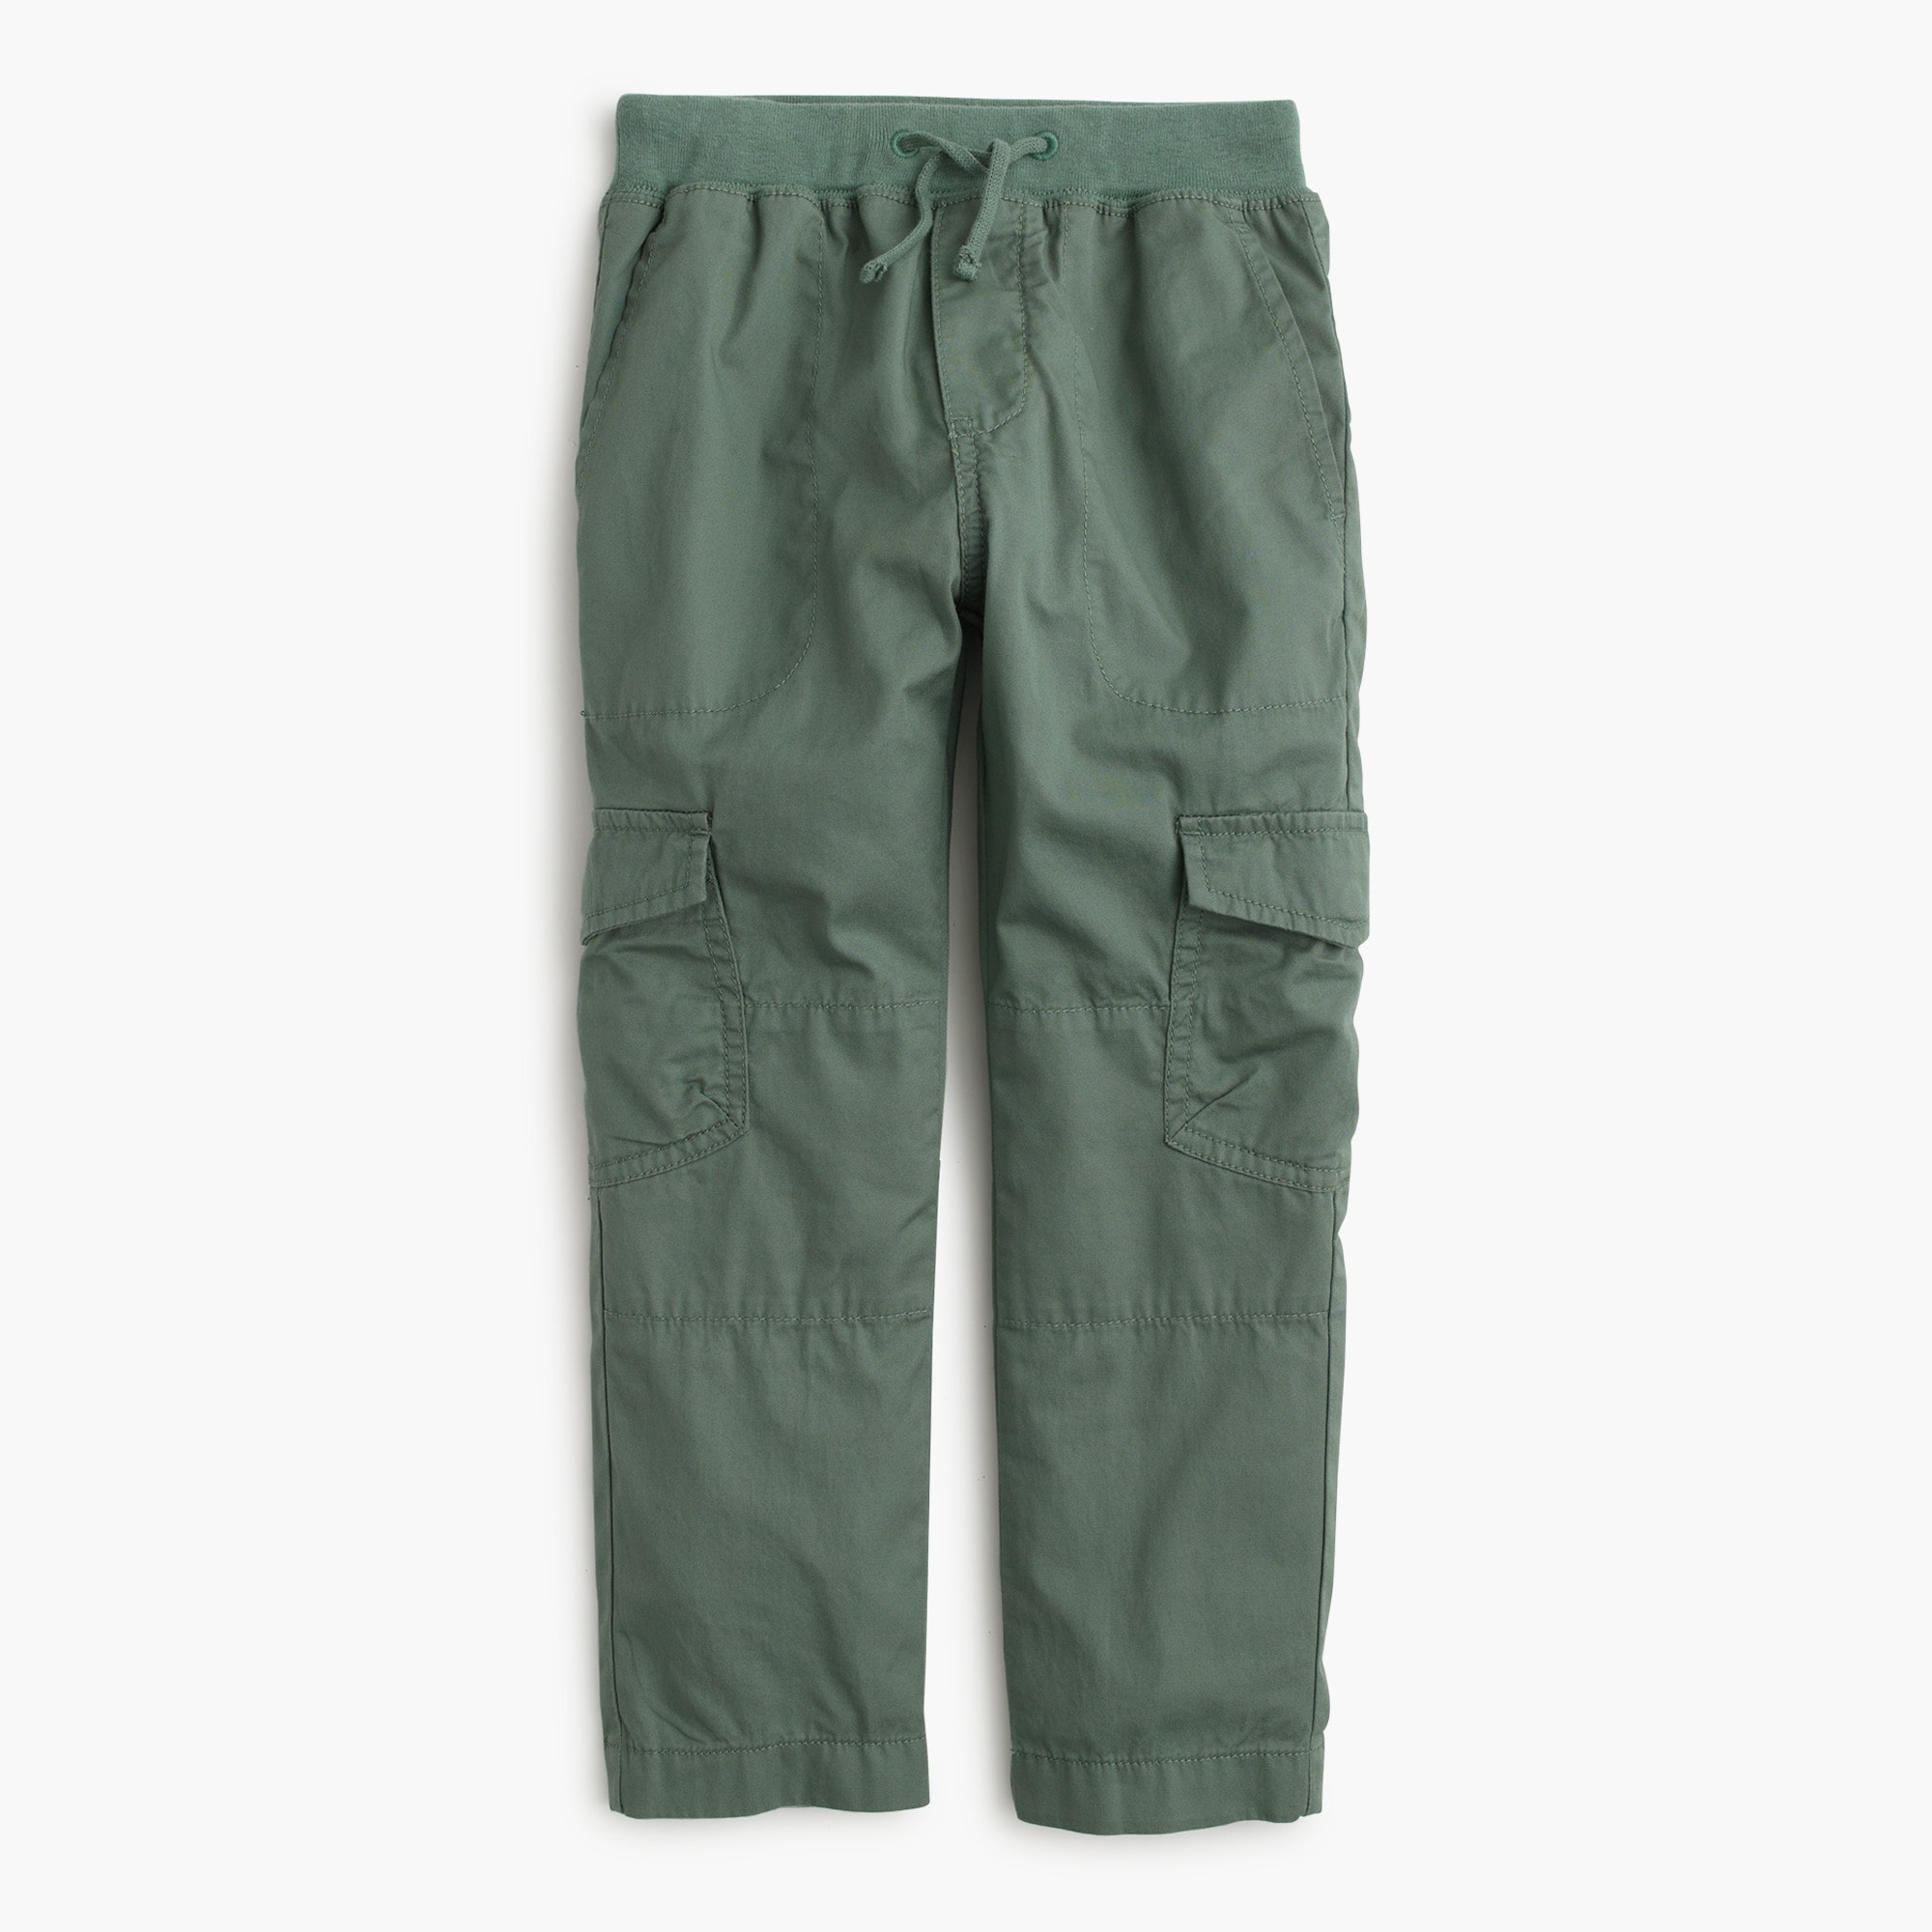 boys' pull-on cargo pant : boy pull-on pants